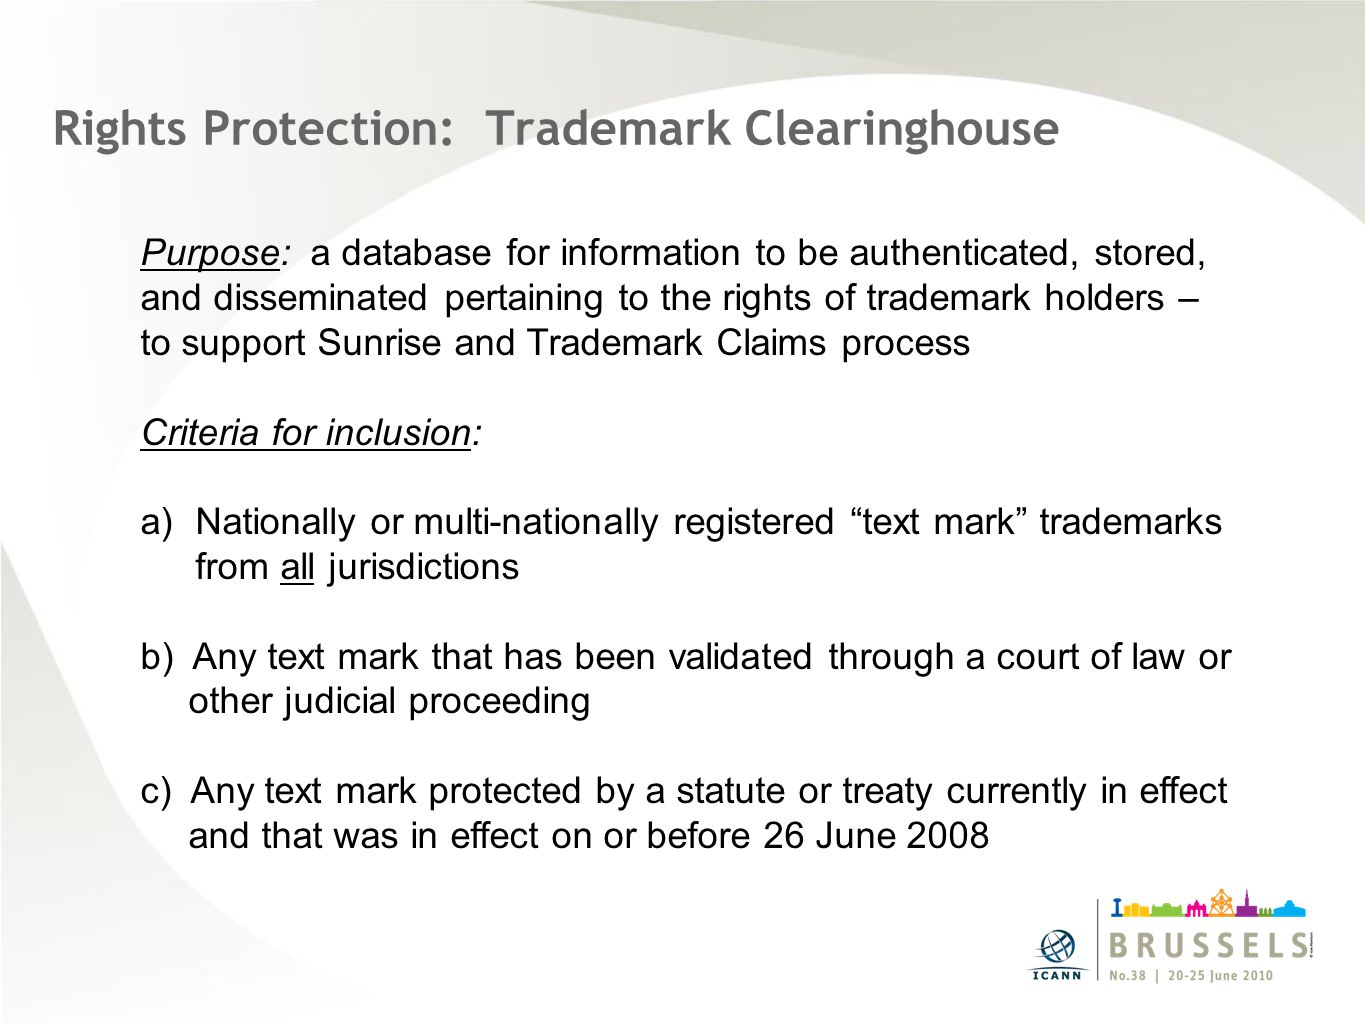 Rights Protection: Trademark Clearinghouse Purpose: a database for information to be authenticated, stored, and disseminated pertaining to the rights